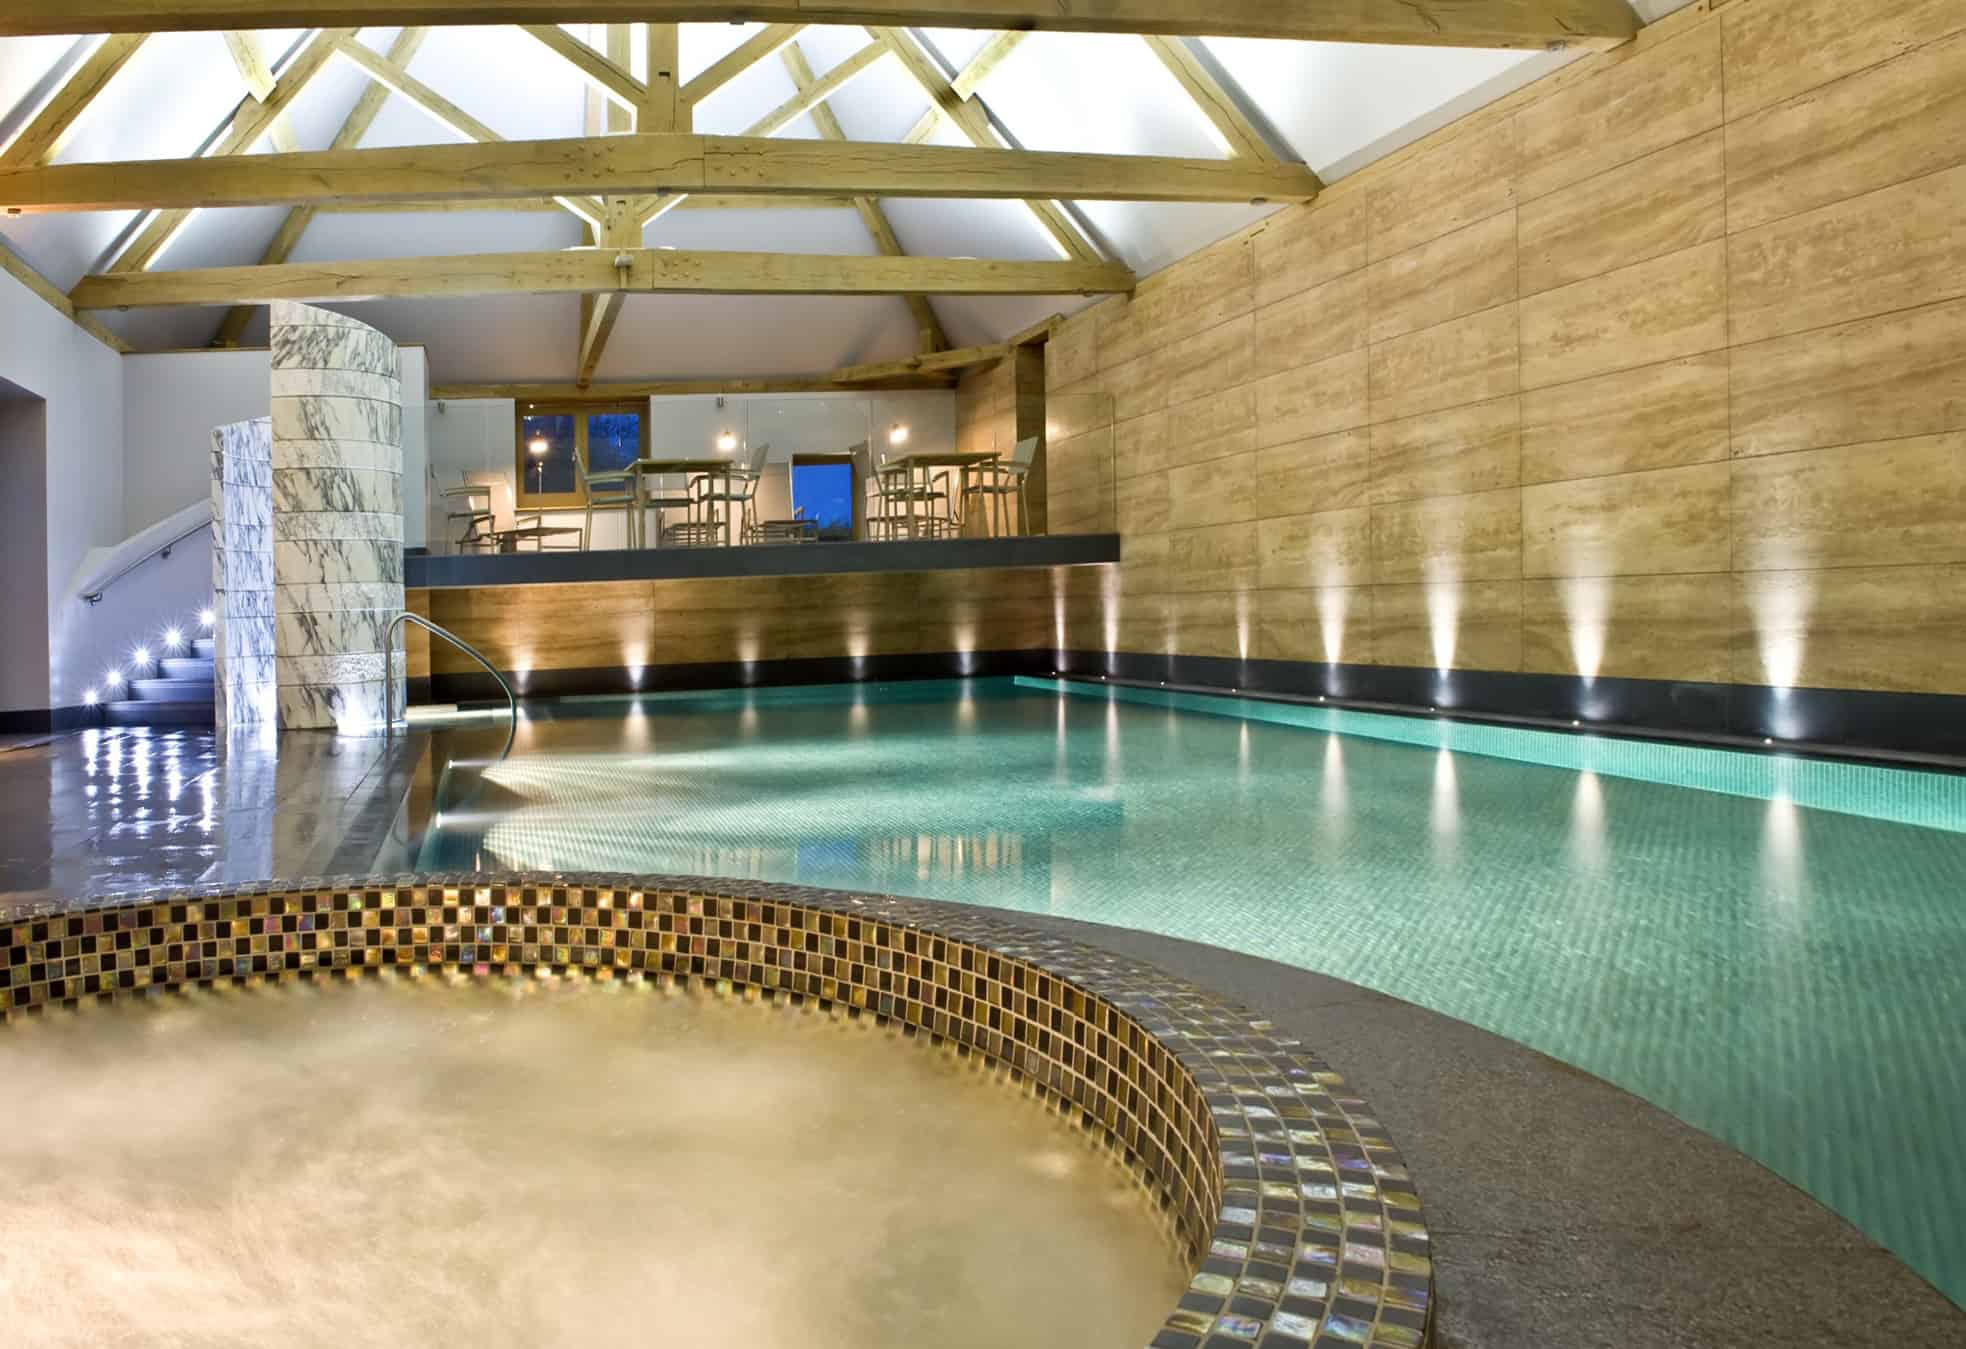 The soa's swimming pool at the Park House Hotel, Bepton, nr Midhurst, West Sussex, England